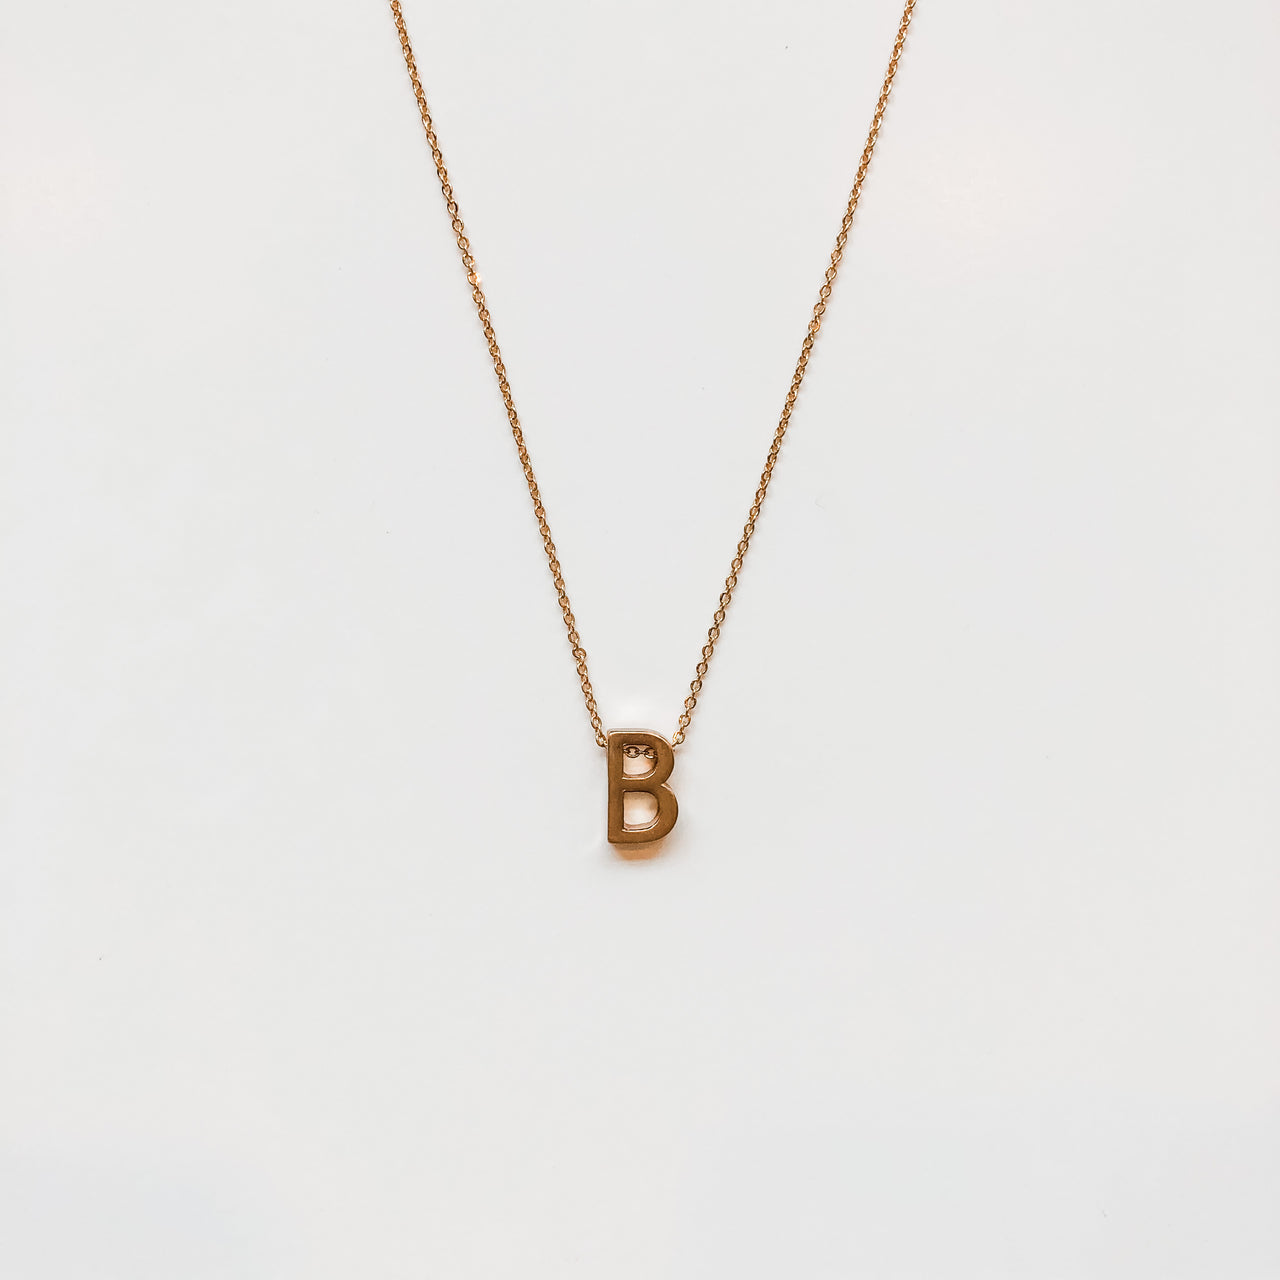 Small Gold Letter Necklaces